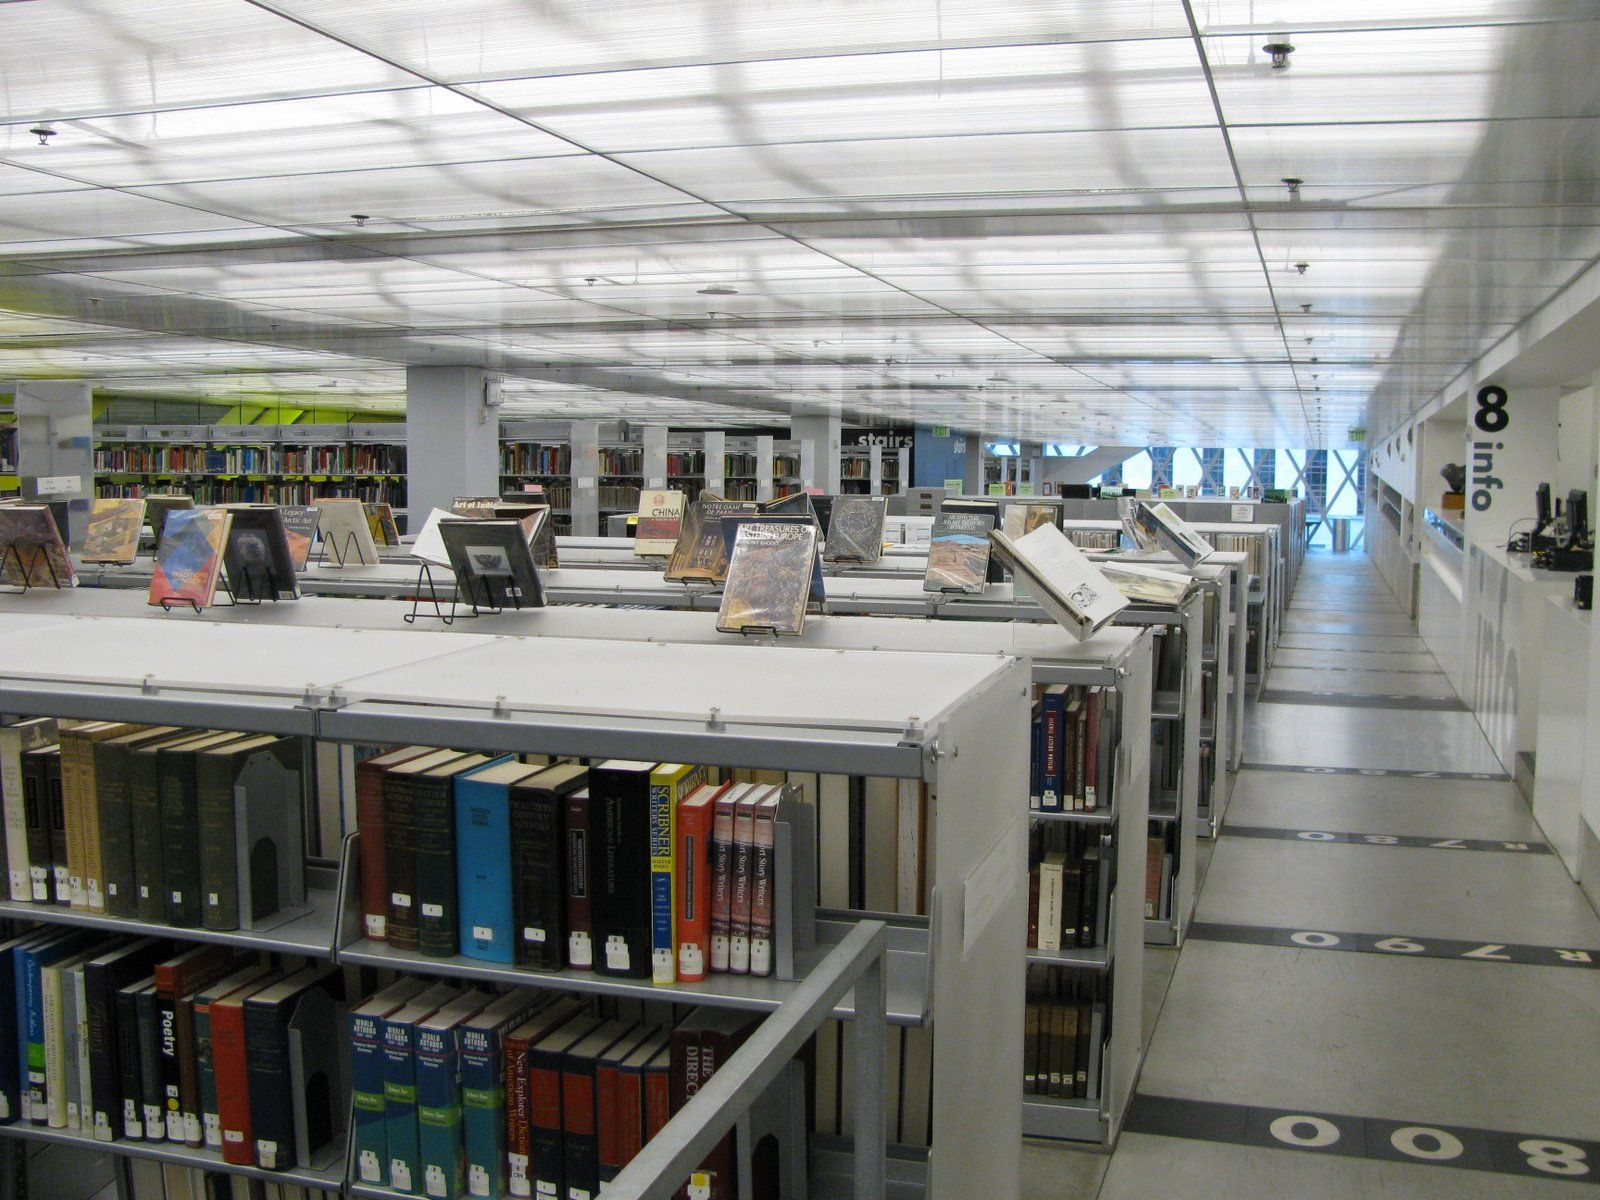 Polycarbonate Panels In The Book Spiral Ceiling At Seattle